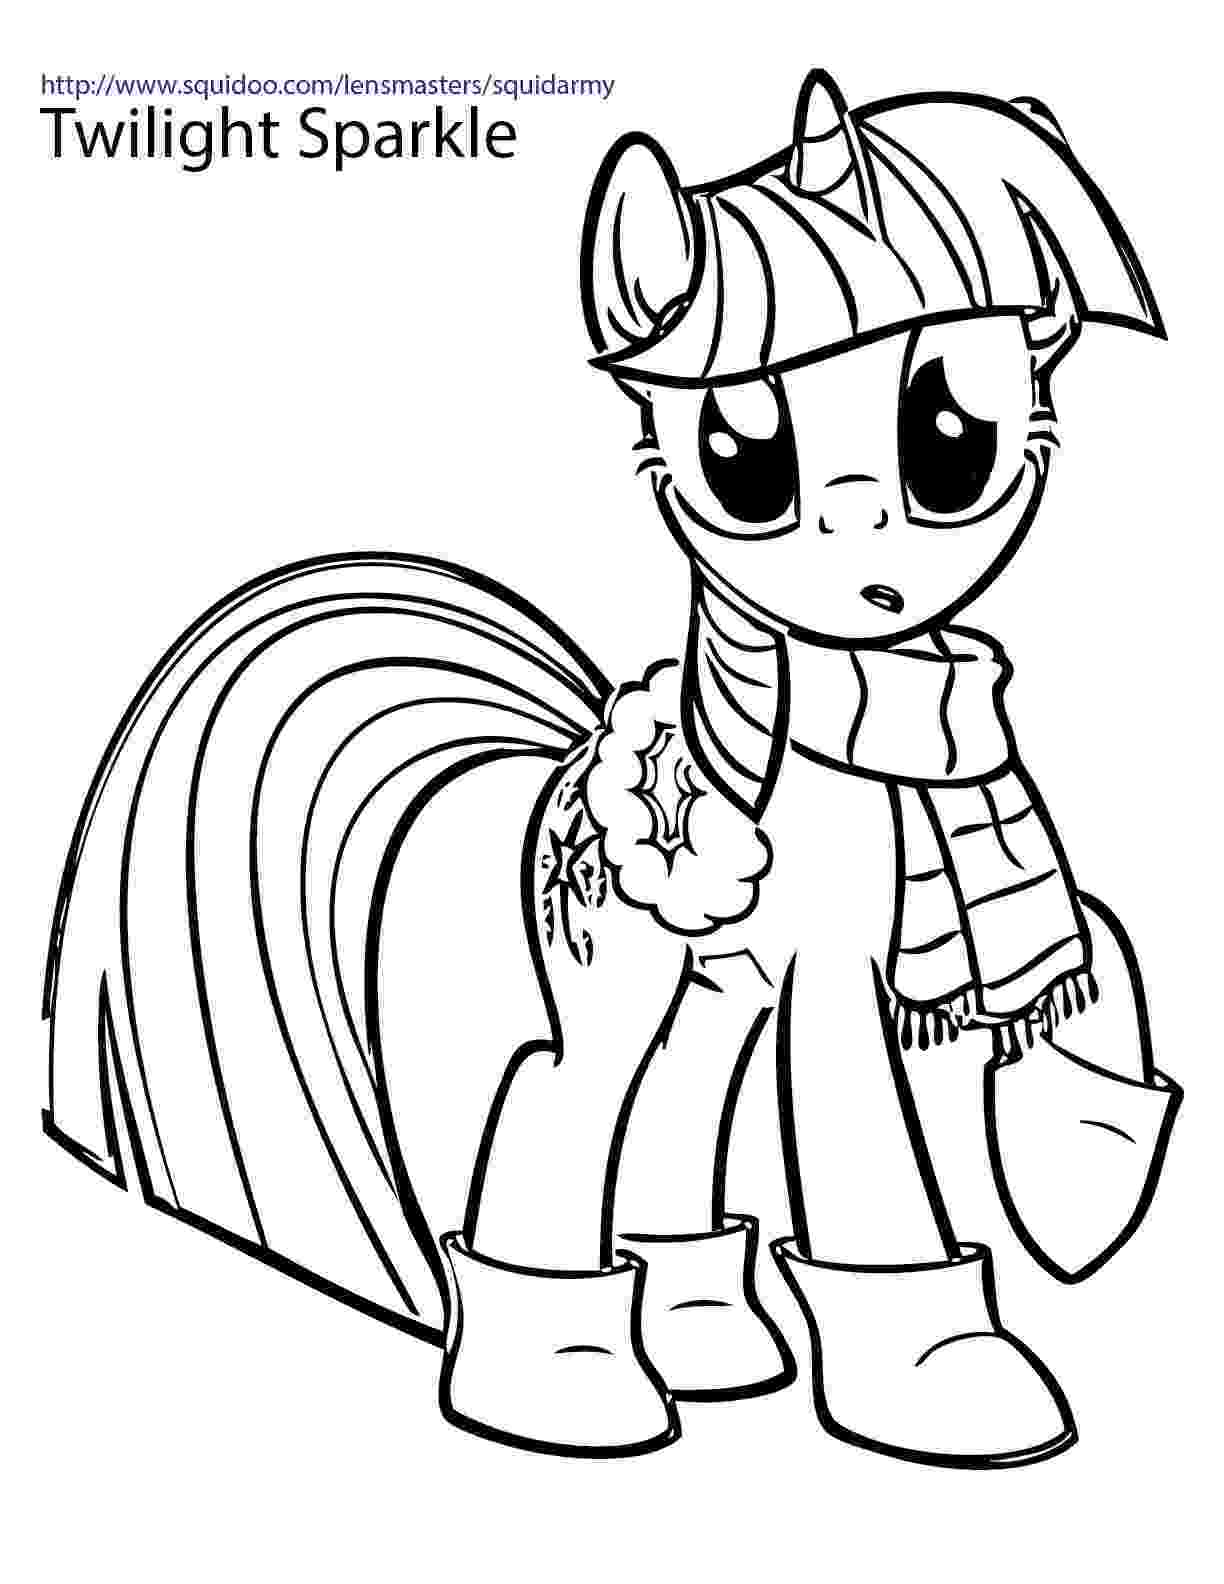 twilight sparkle colouring pages my little pony coloring pages squid army colouring sparkle pages twilight